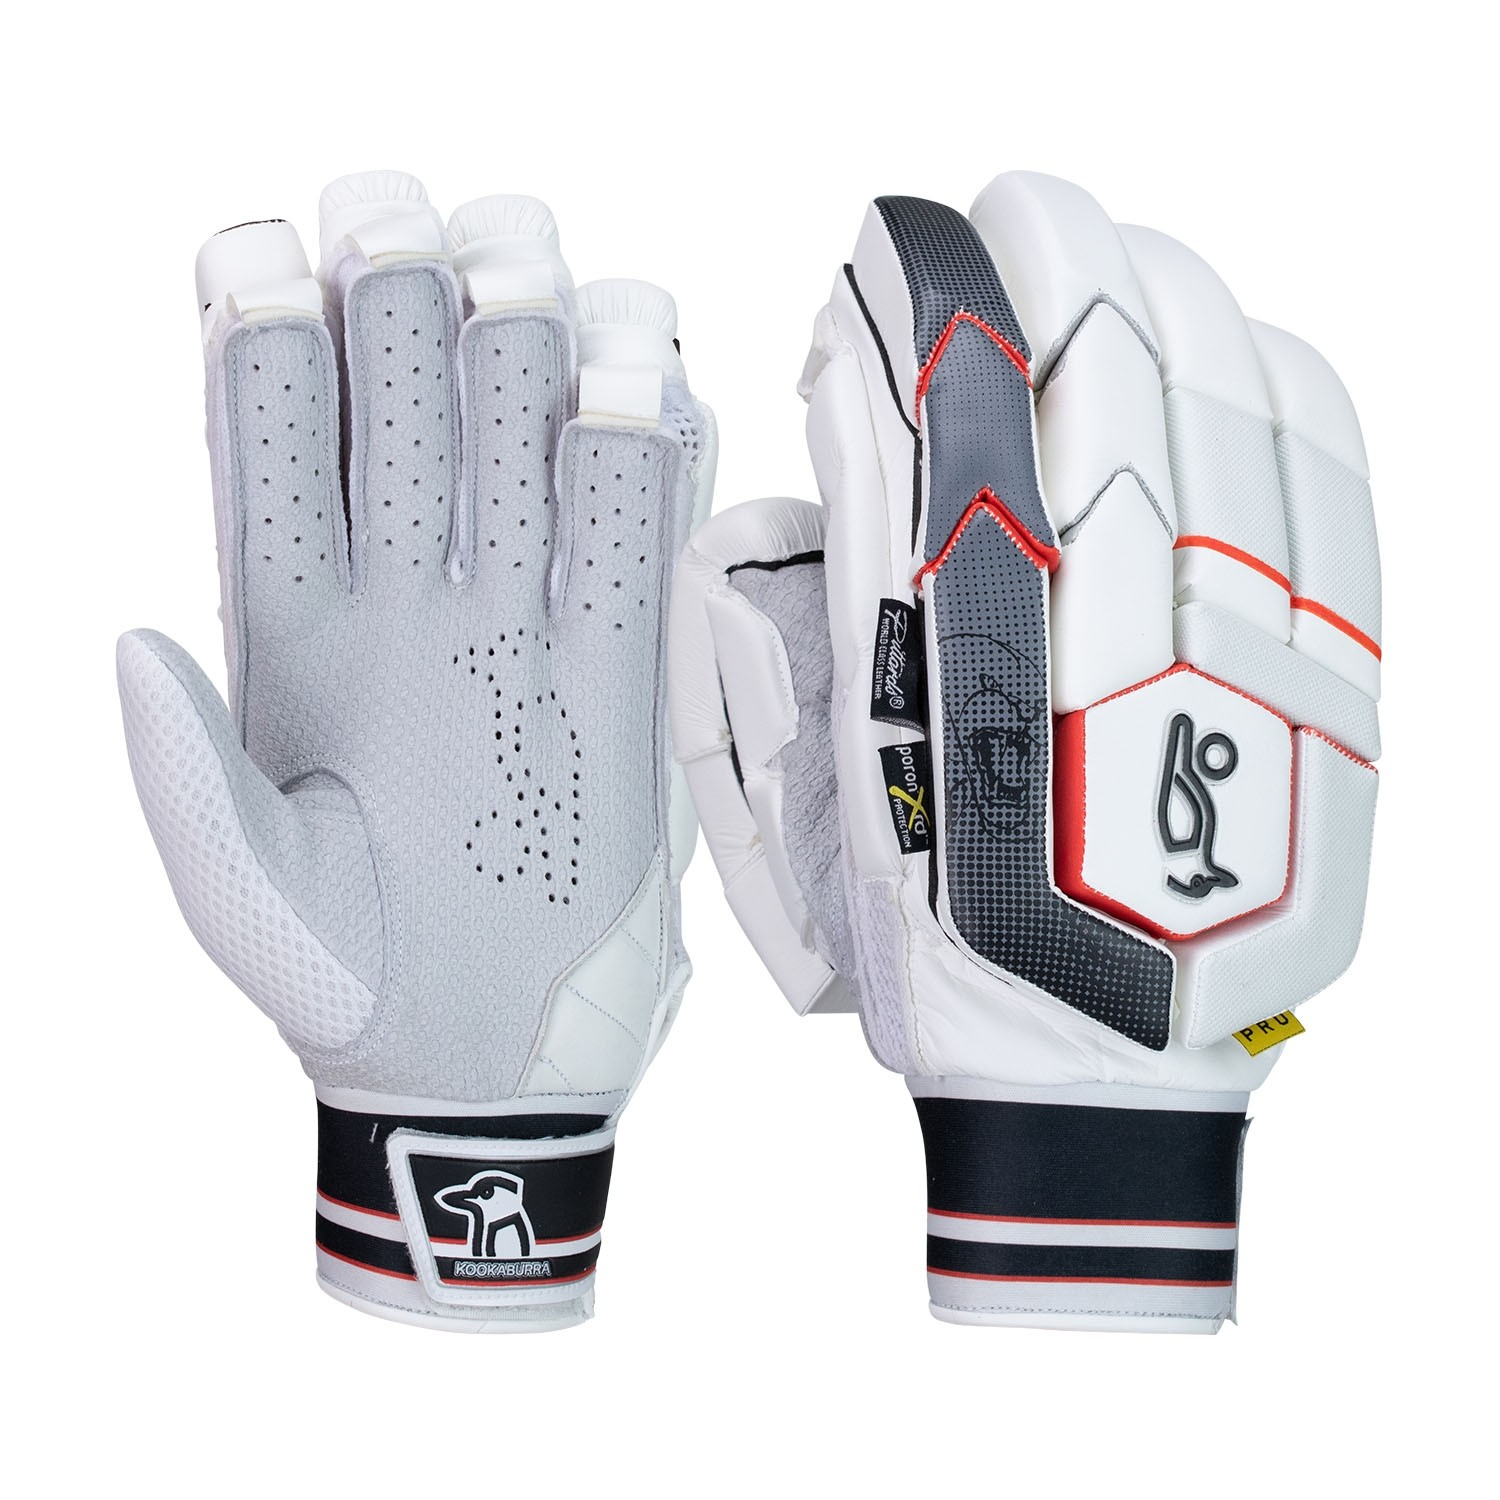 2021 Kookaburra Beast Pro Batting Gloves